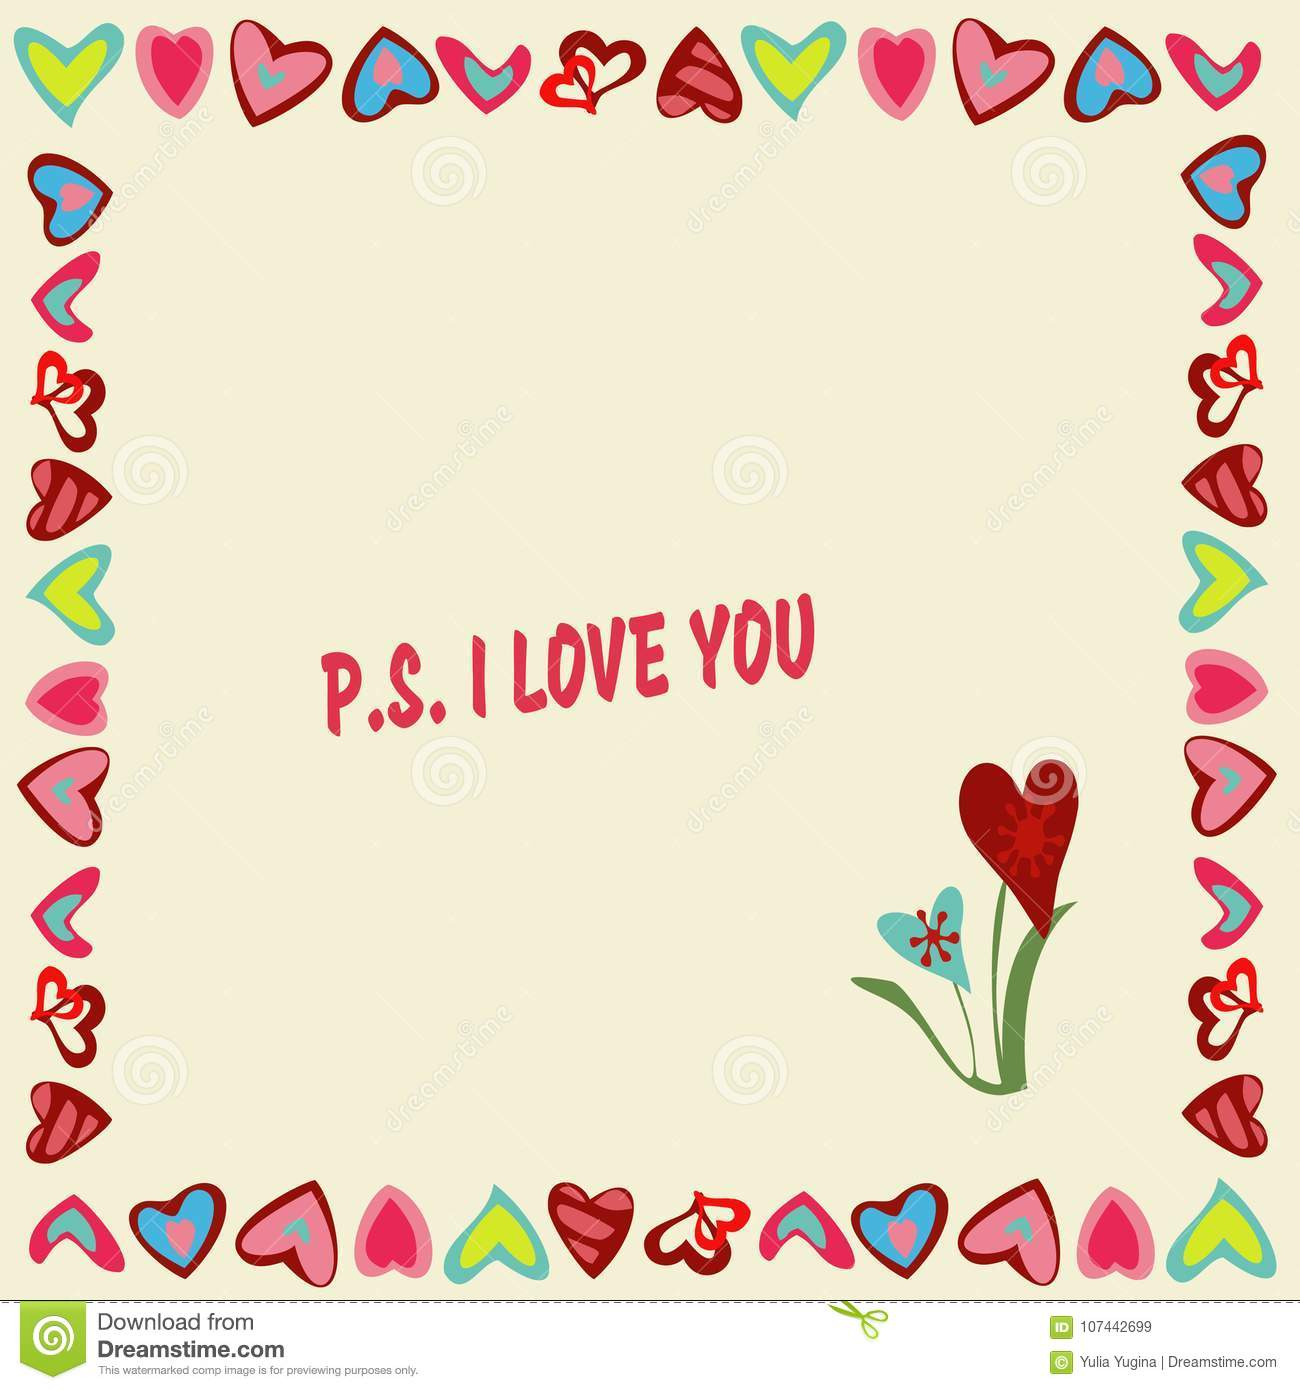 Frame Of Hearts On A Yellow Background With Text P.S. I Love You ...